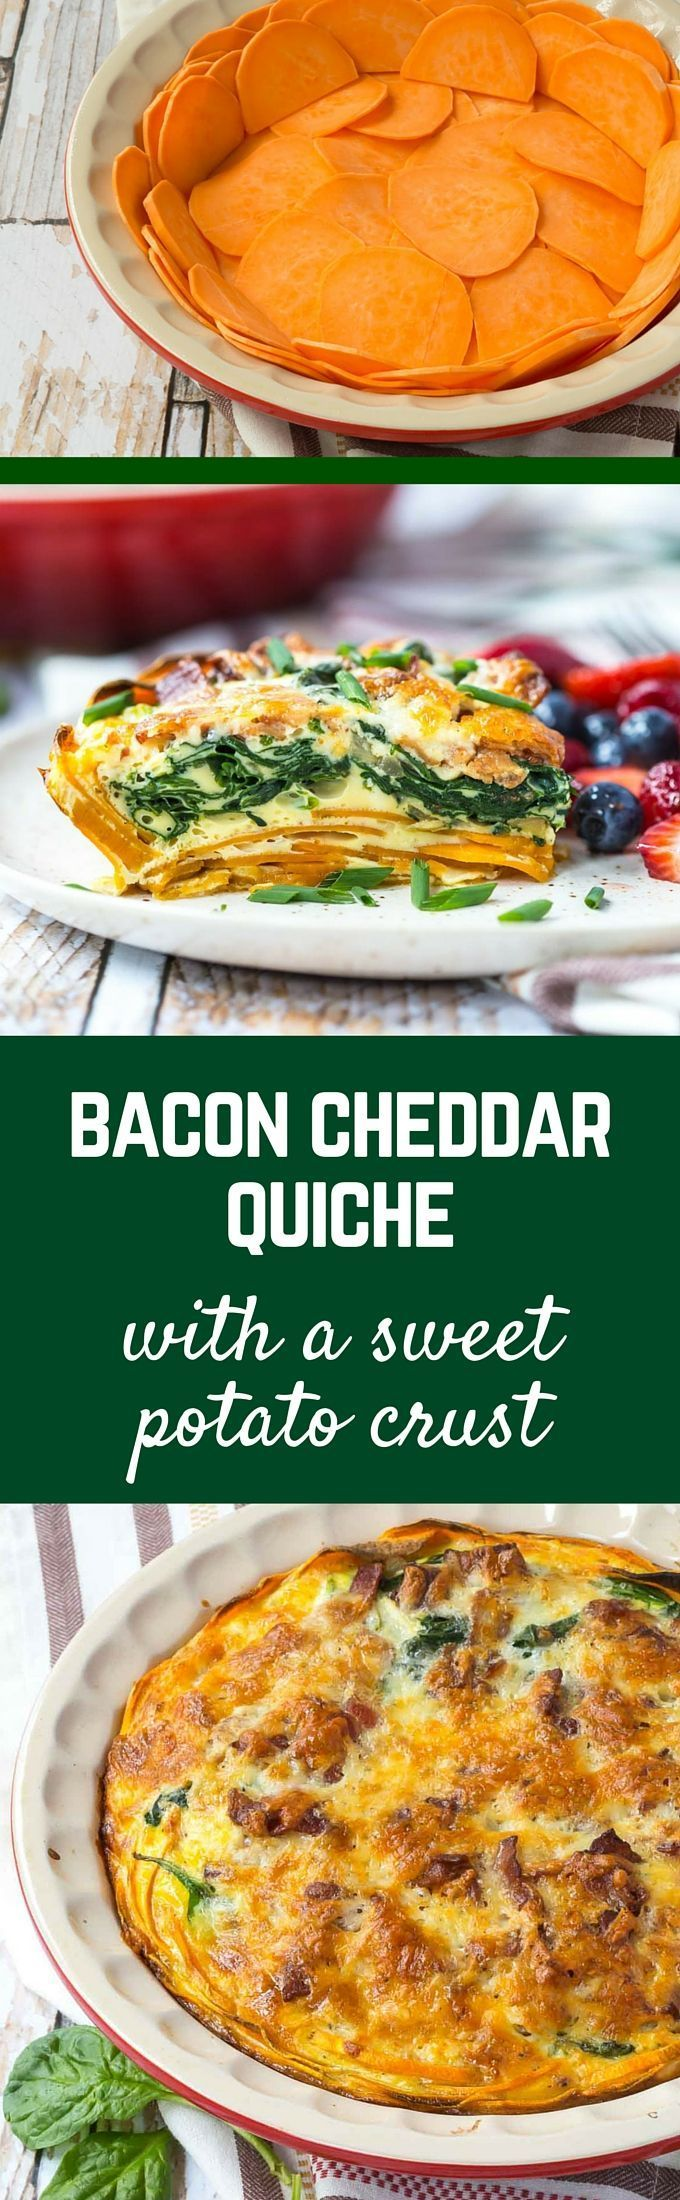 If you haven't made a quiche with a sweet potato crust, it's time to give it a try! This bacon cheddar quiche is a healthier alternative to a traditional quiche, plus it packs more flavor!